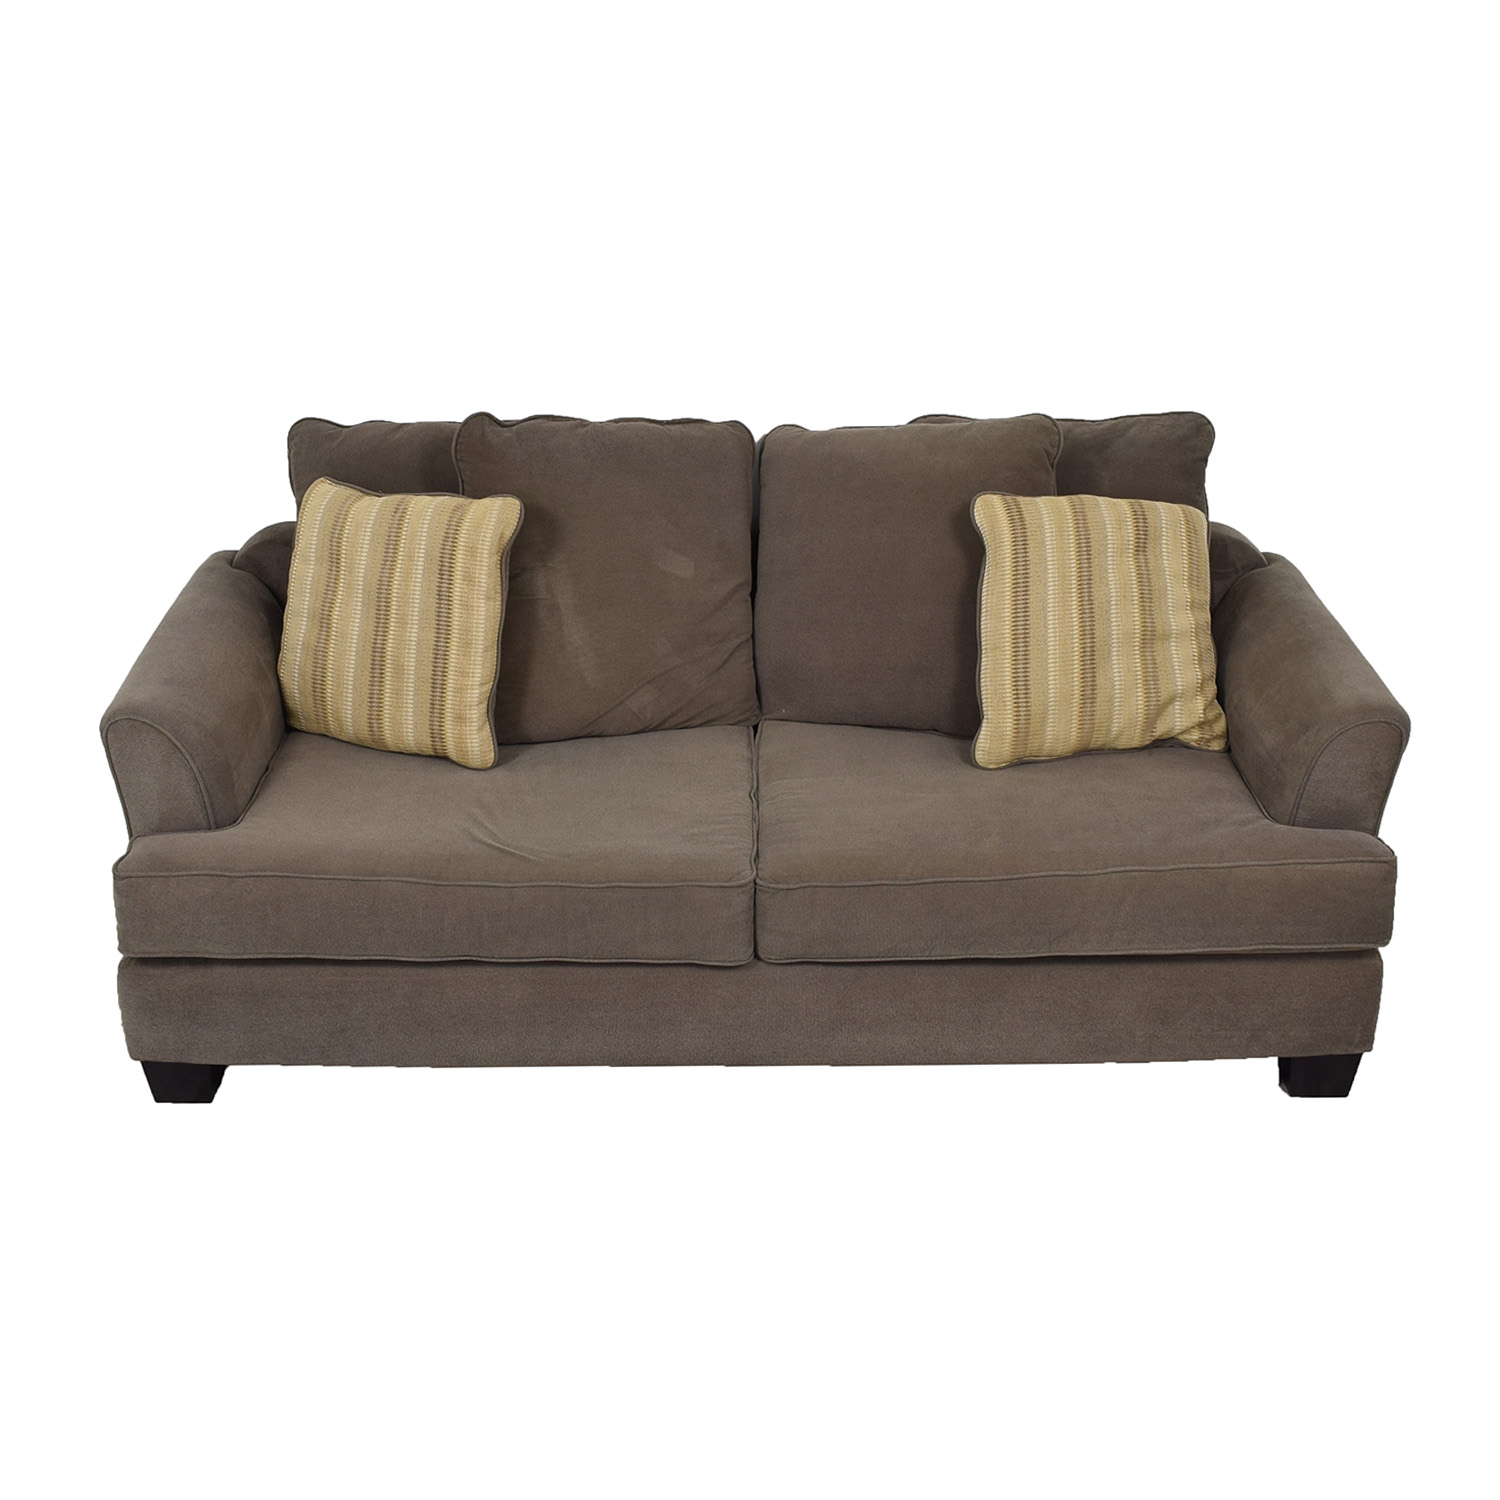 buy Raymour & Flanigan Kathy Ireland Brown Two-Cushion Sofa Raymour & Flanigan Classic Sofas